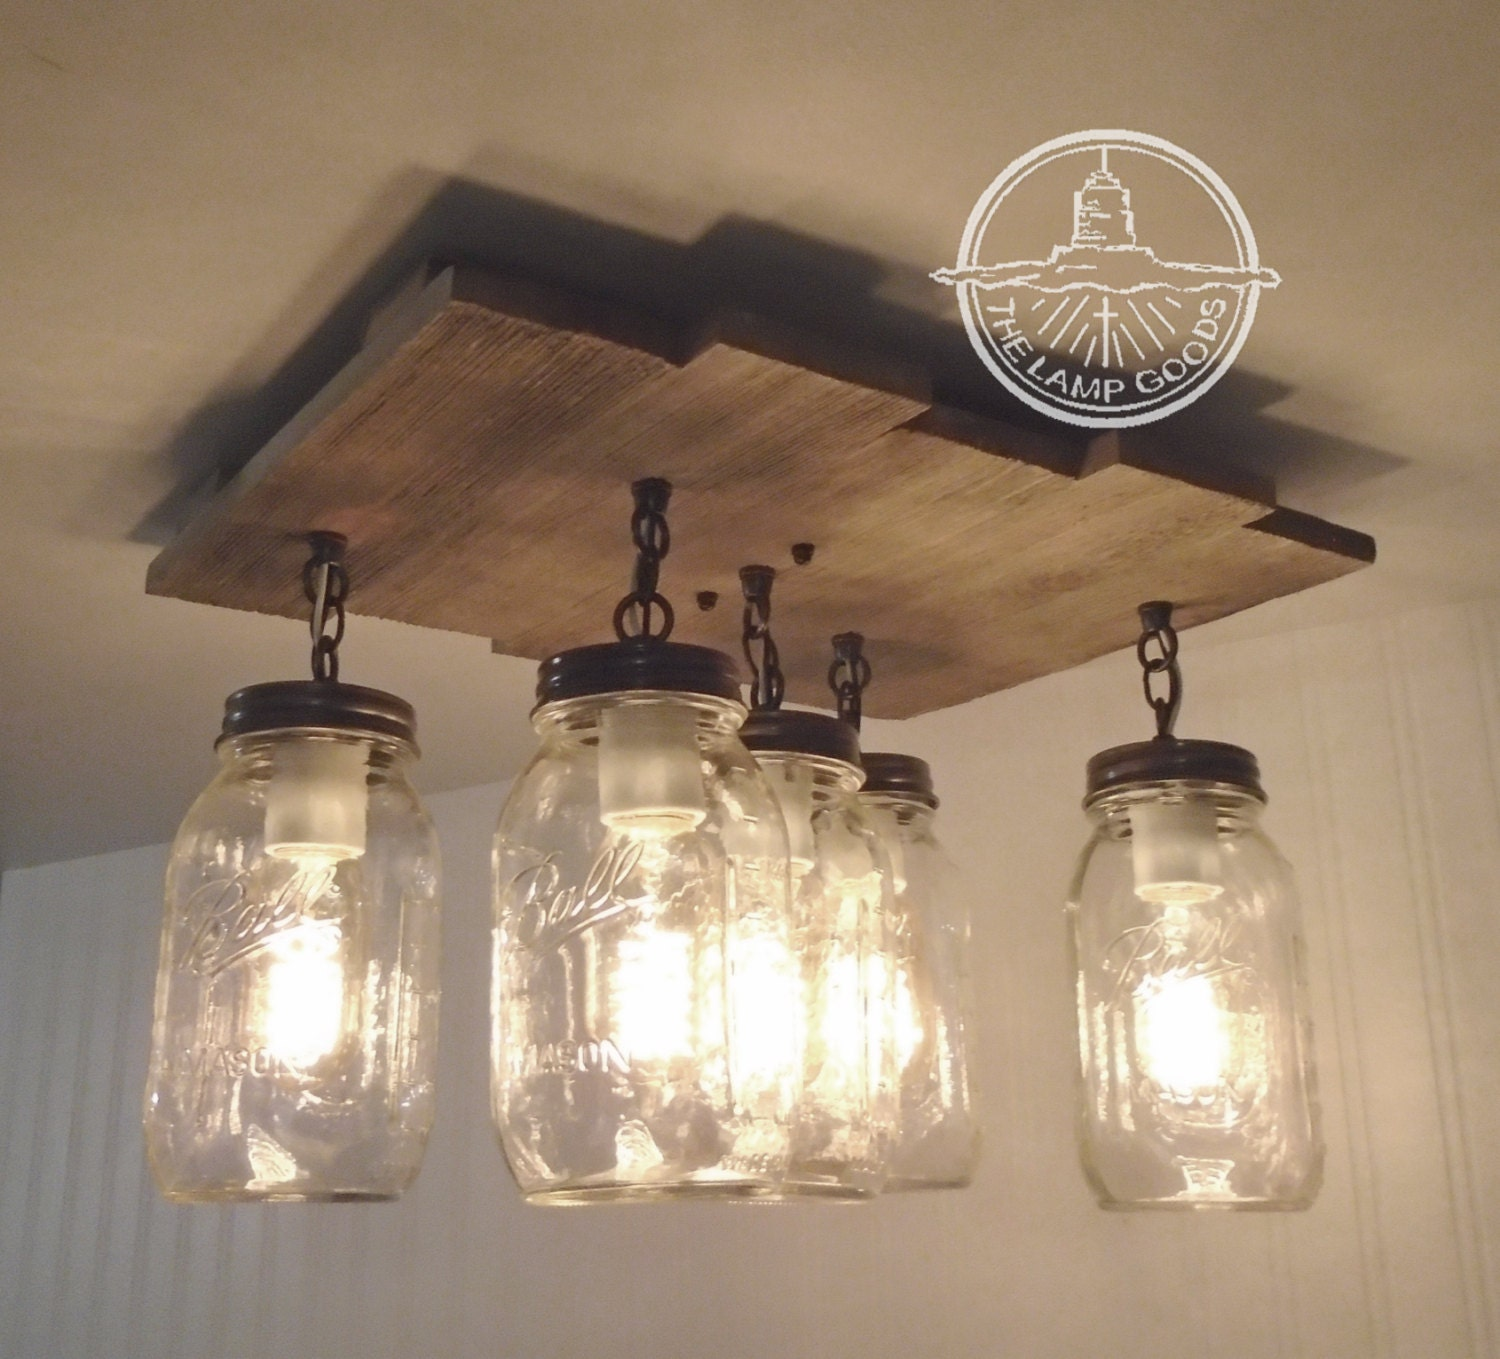 Mason Jar Flush Mount Ceiling Light With Reclaimed Wood